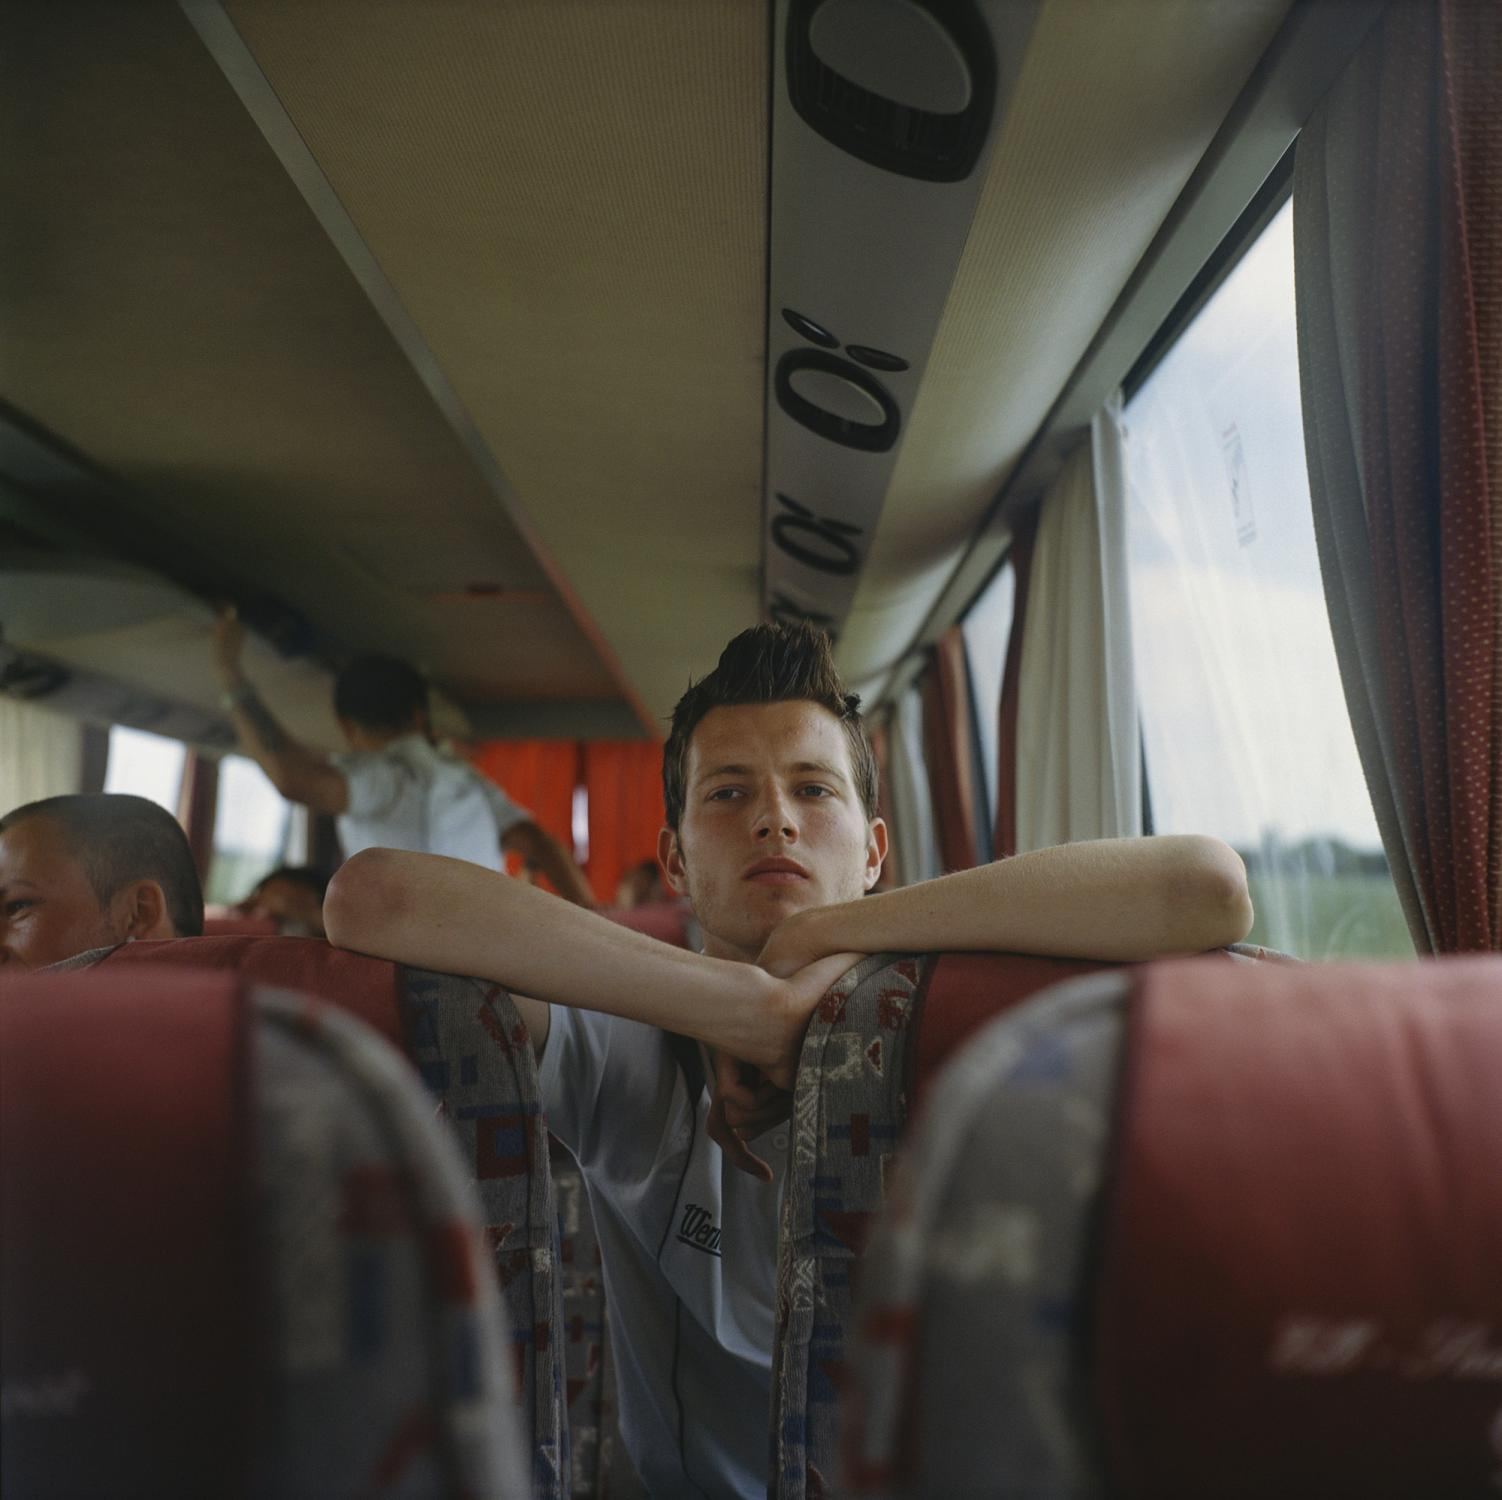 Matthias Tischer (tor-keeper) looks on in the 1.FCM bus during the trip to Hehenmöseln where the team will play the last friendly match of the season before the summer break, in Magdeburg.